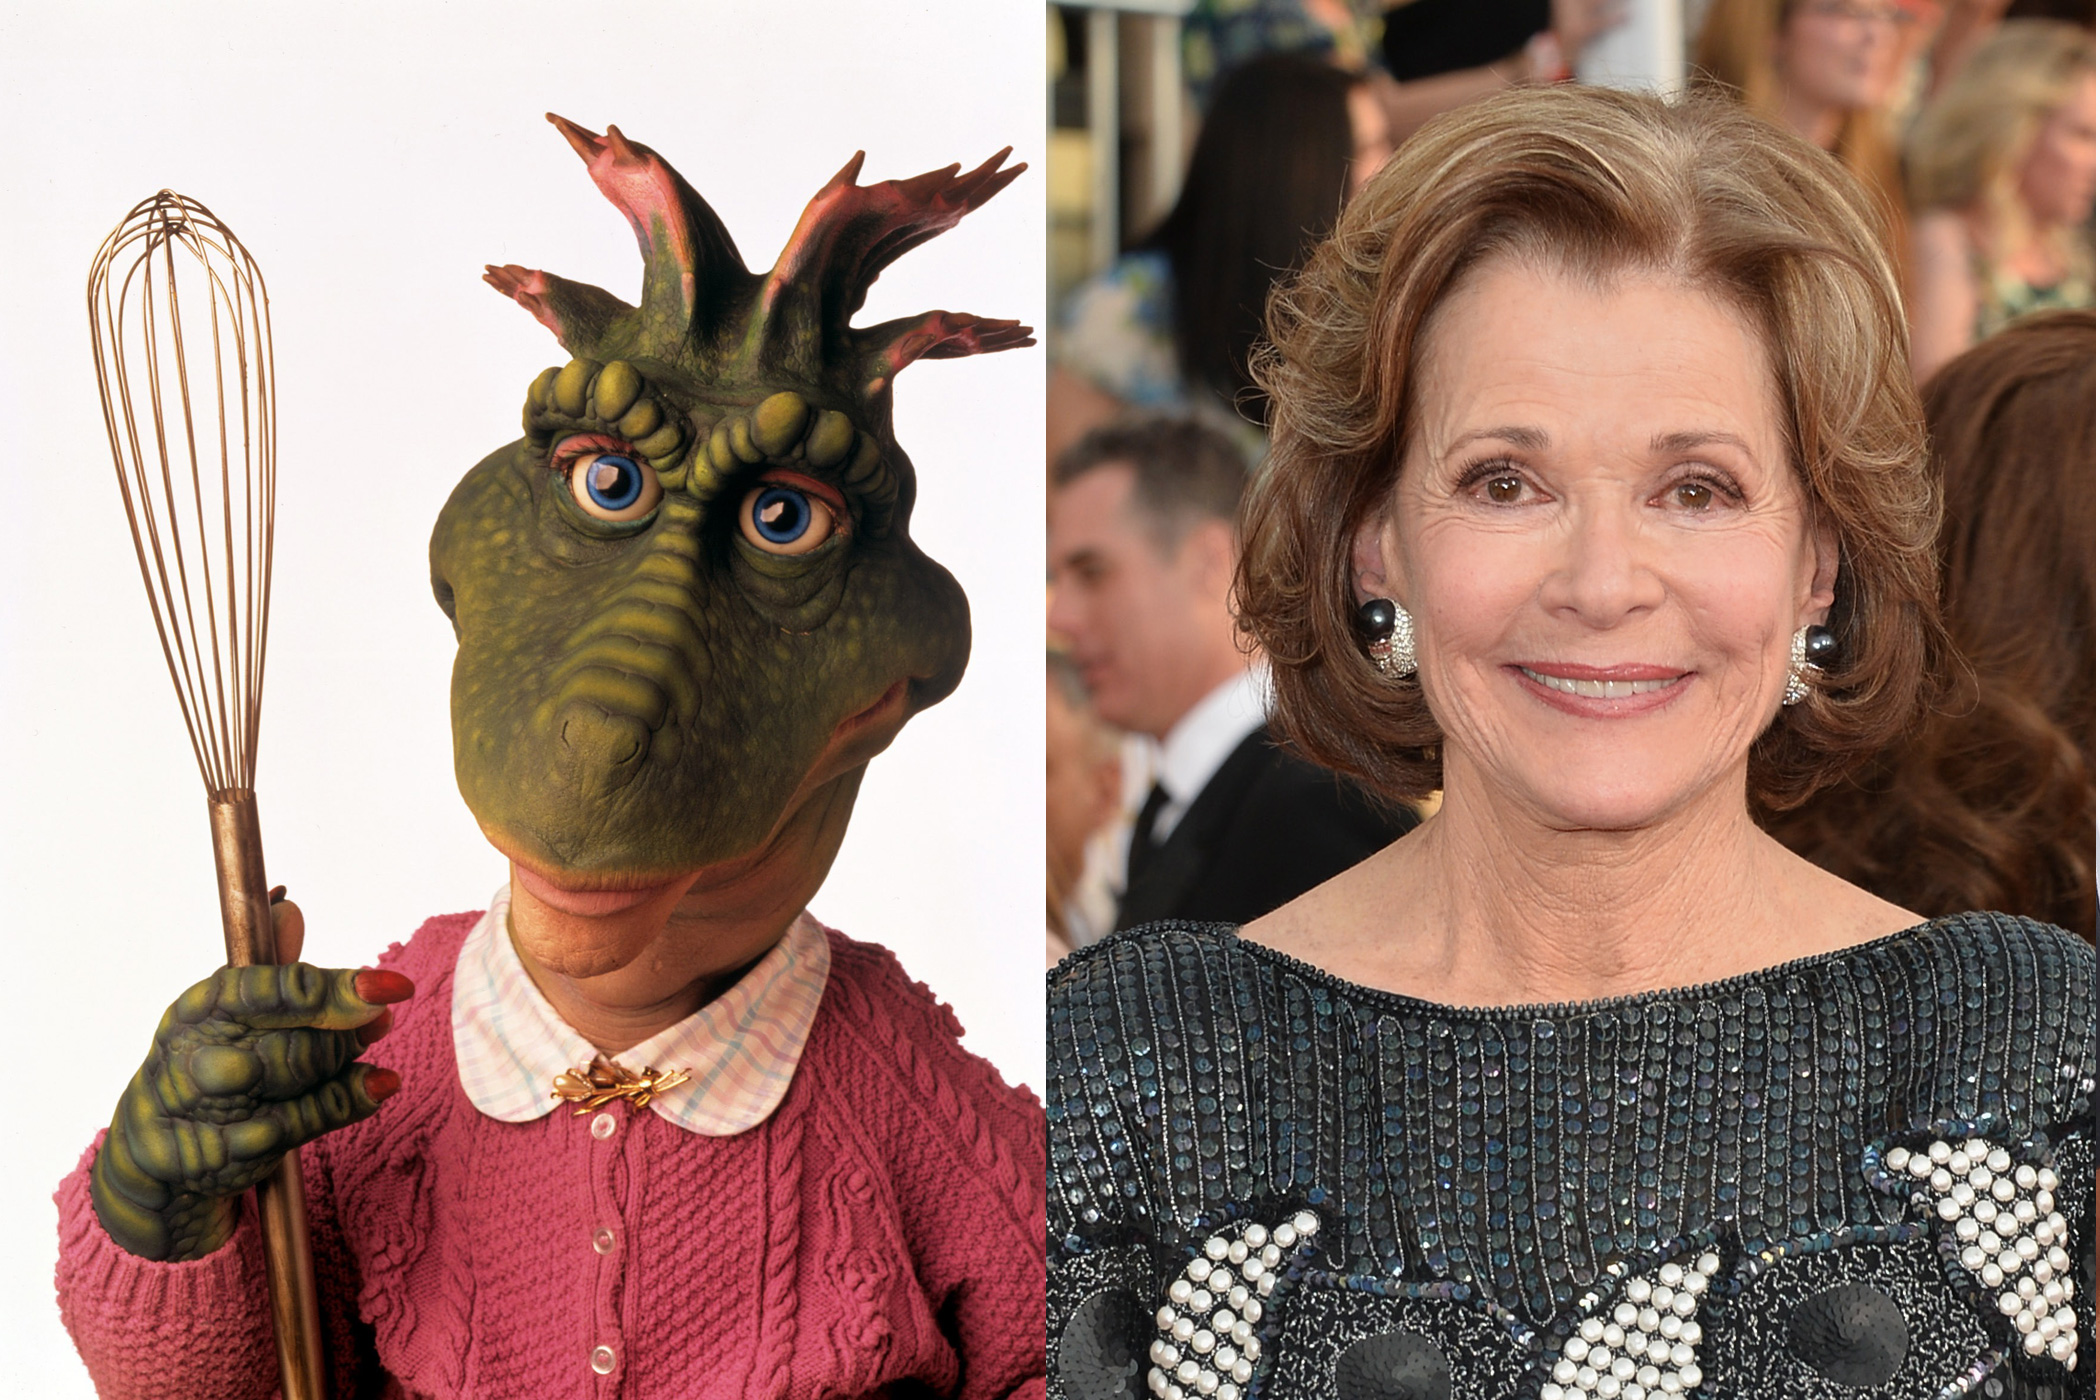 <i>Arrested Development</i> star Jessica Walter currently voices Malory Archer in FX's <i>Archer</i>, but back in the 90s, she was the voice of <i>Dinosaurs</i> matriarch Fran Sinclair.